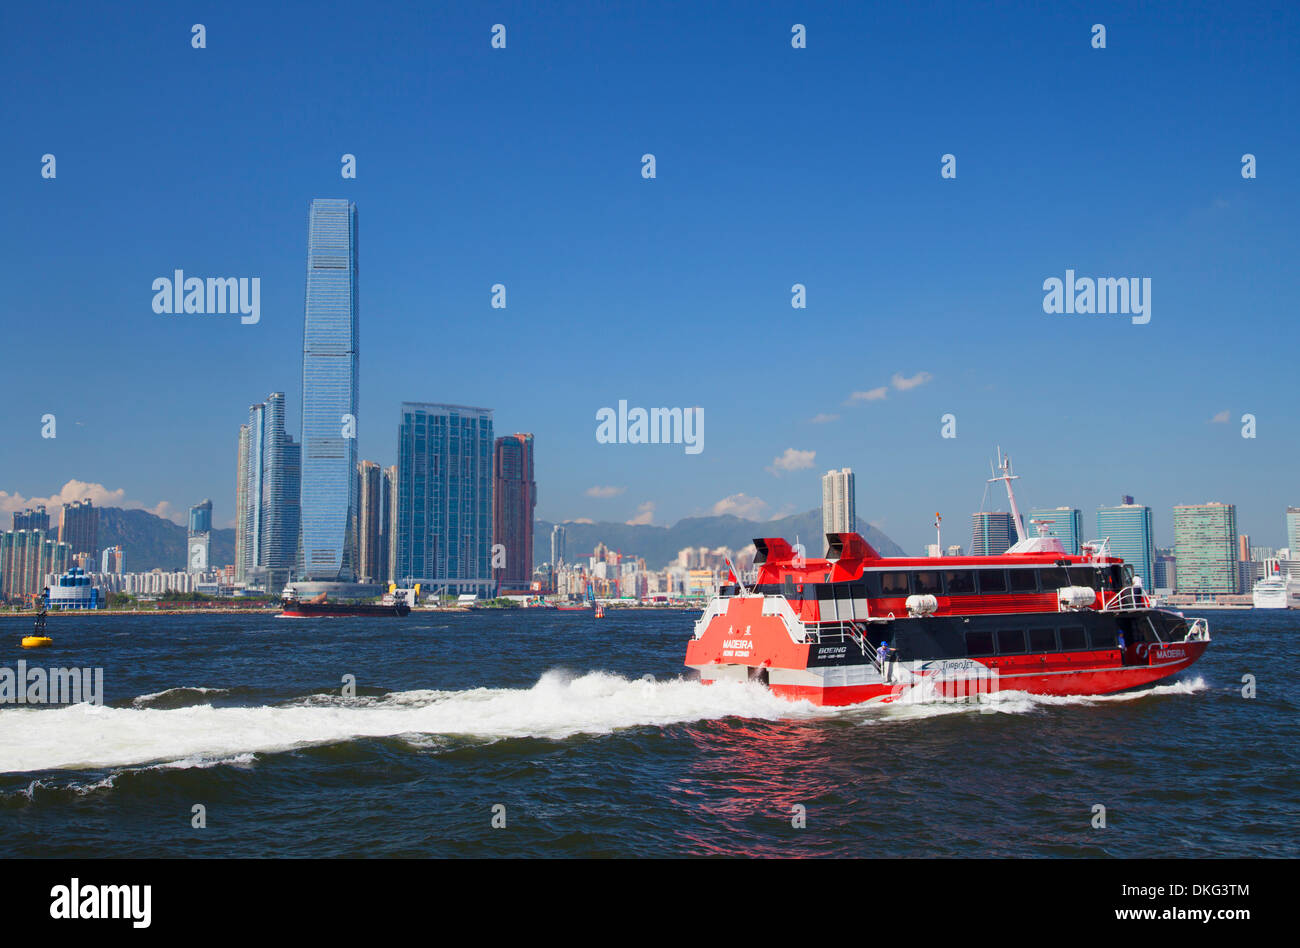 International Commerce Centre (ICC) and Macau ferry, West Kowloon, Hong Kong, China, Asia - Stock Image